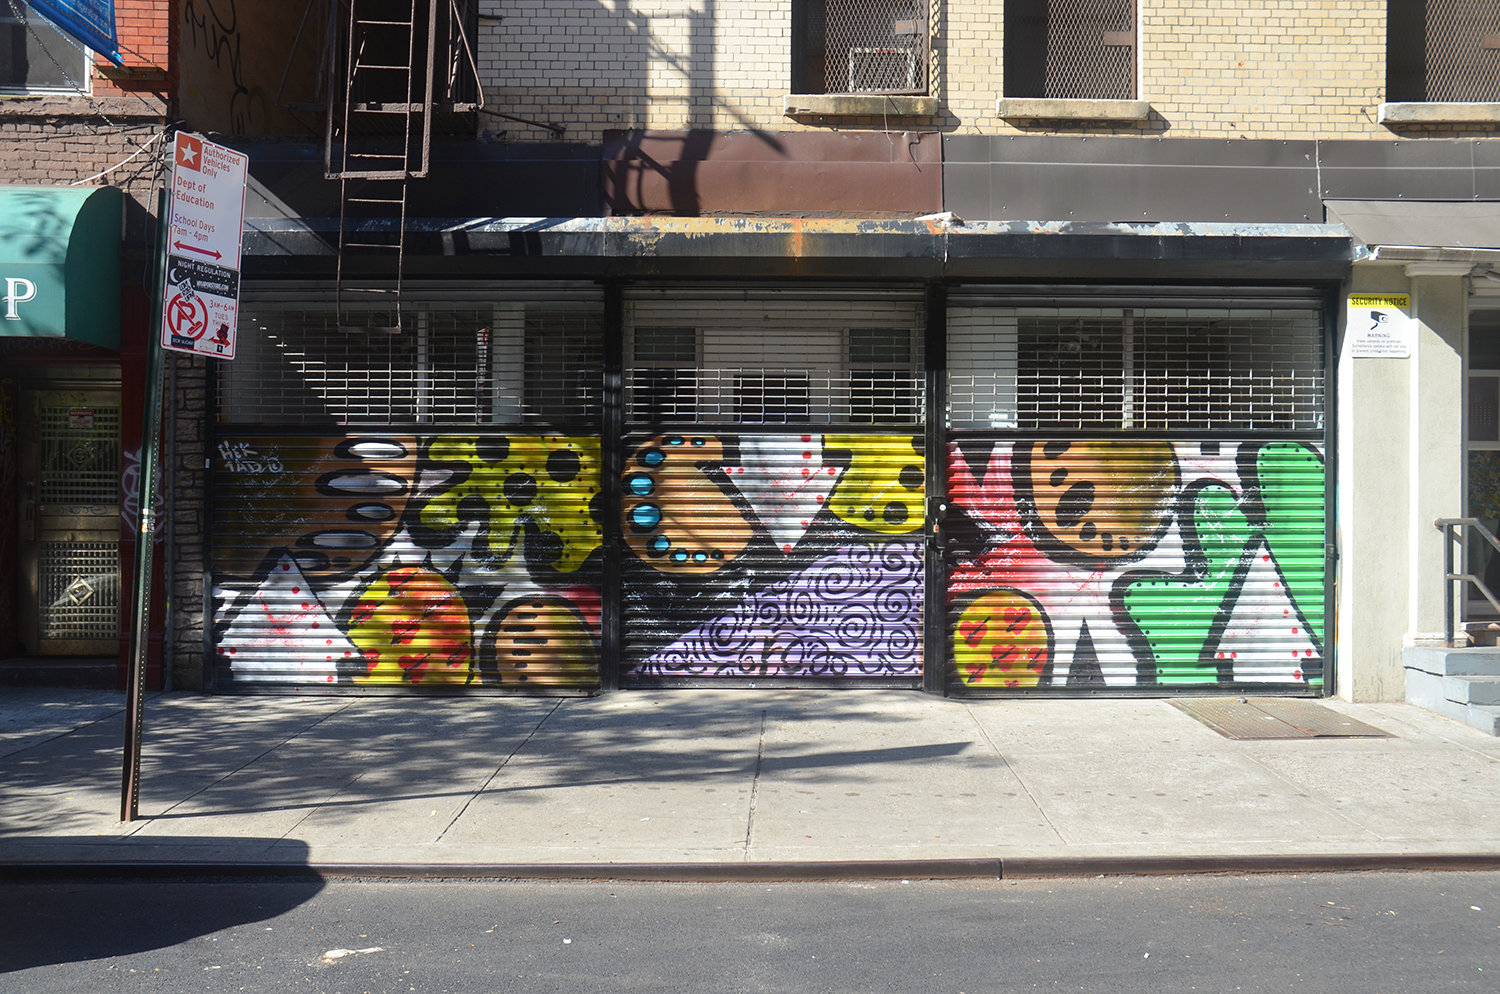 100 Gates - Ashok Jain Gallery at 58 Hester Street by Hektad